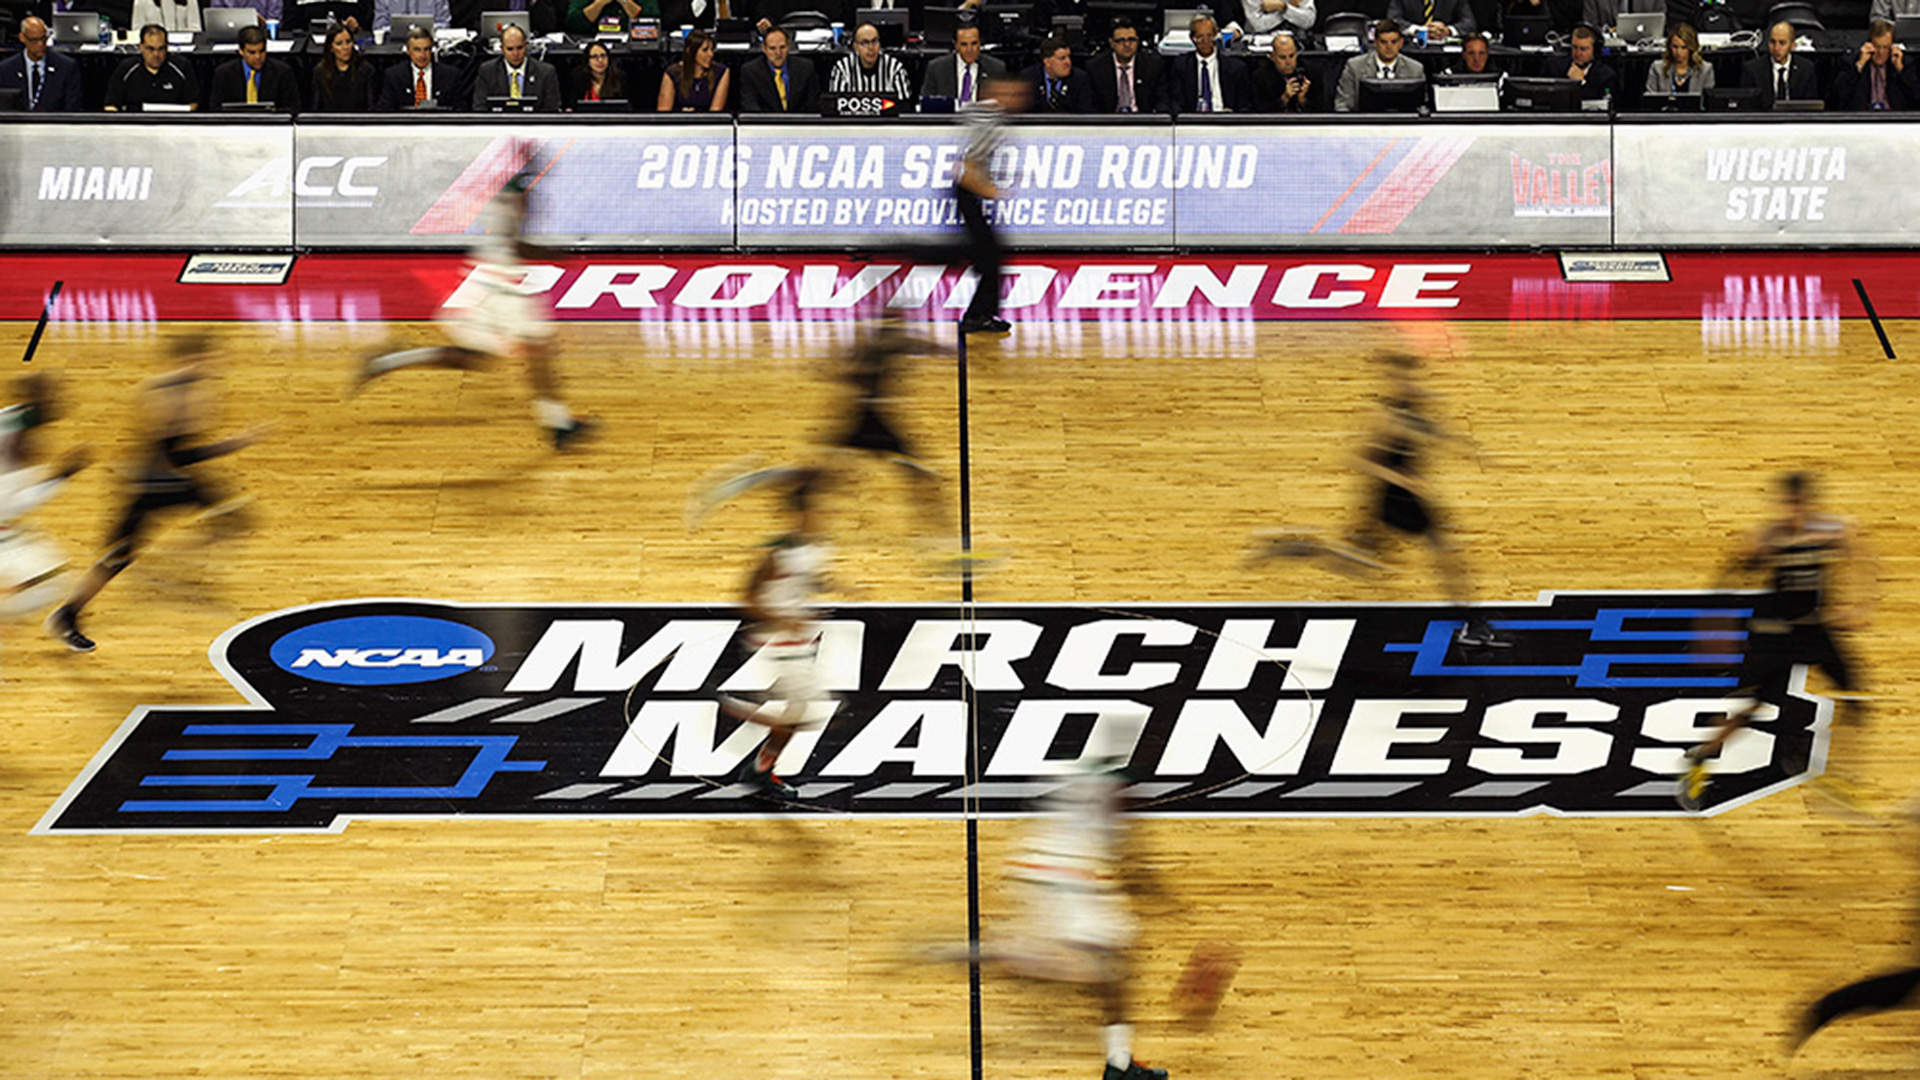 March Madness live bracket: Full schedule, scores, how to watch 2021 NCAA Tournament games